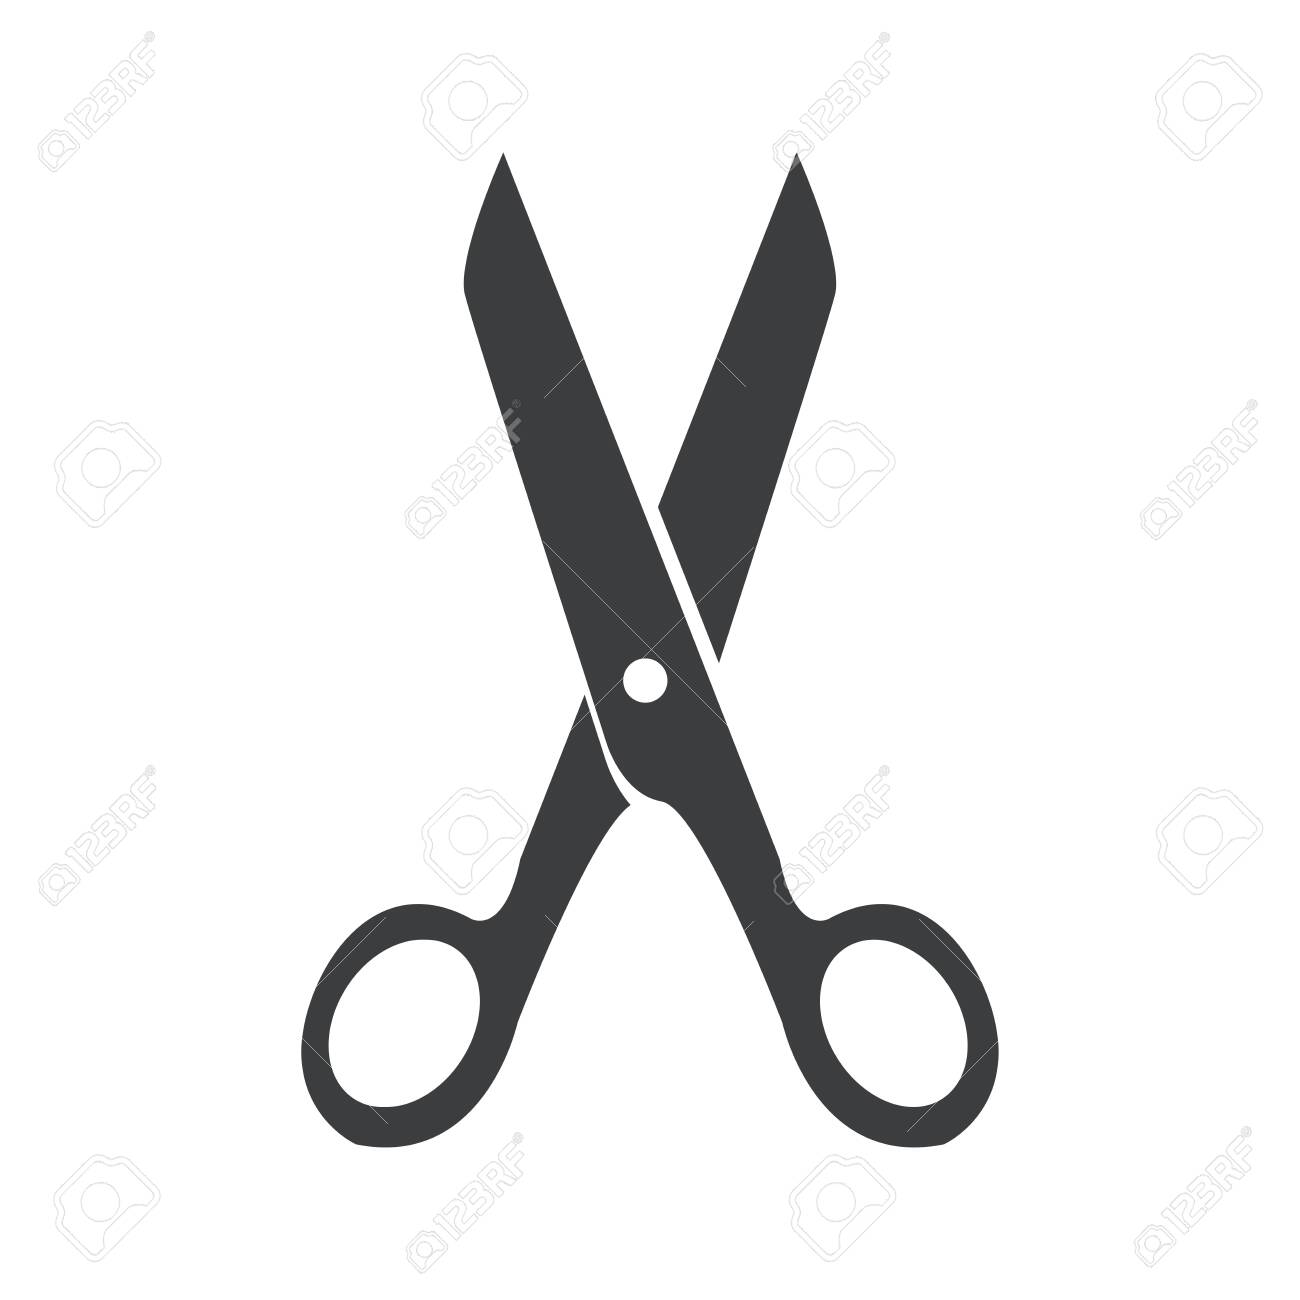 scissors icon on a background - 145699756